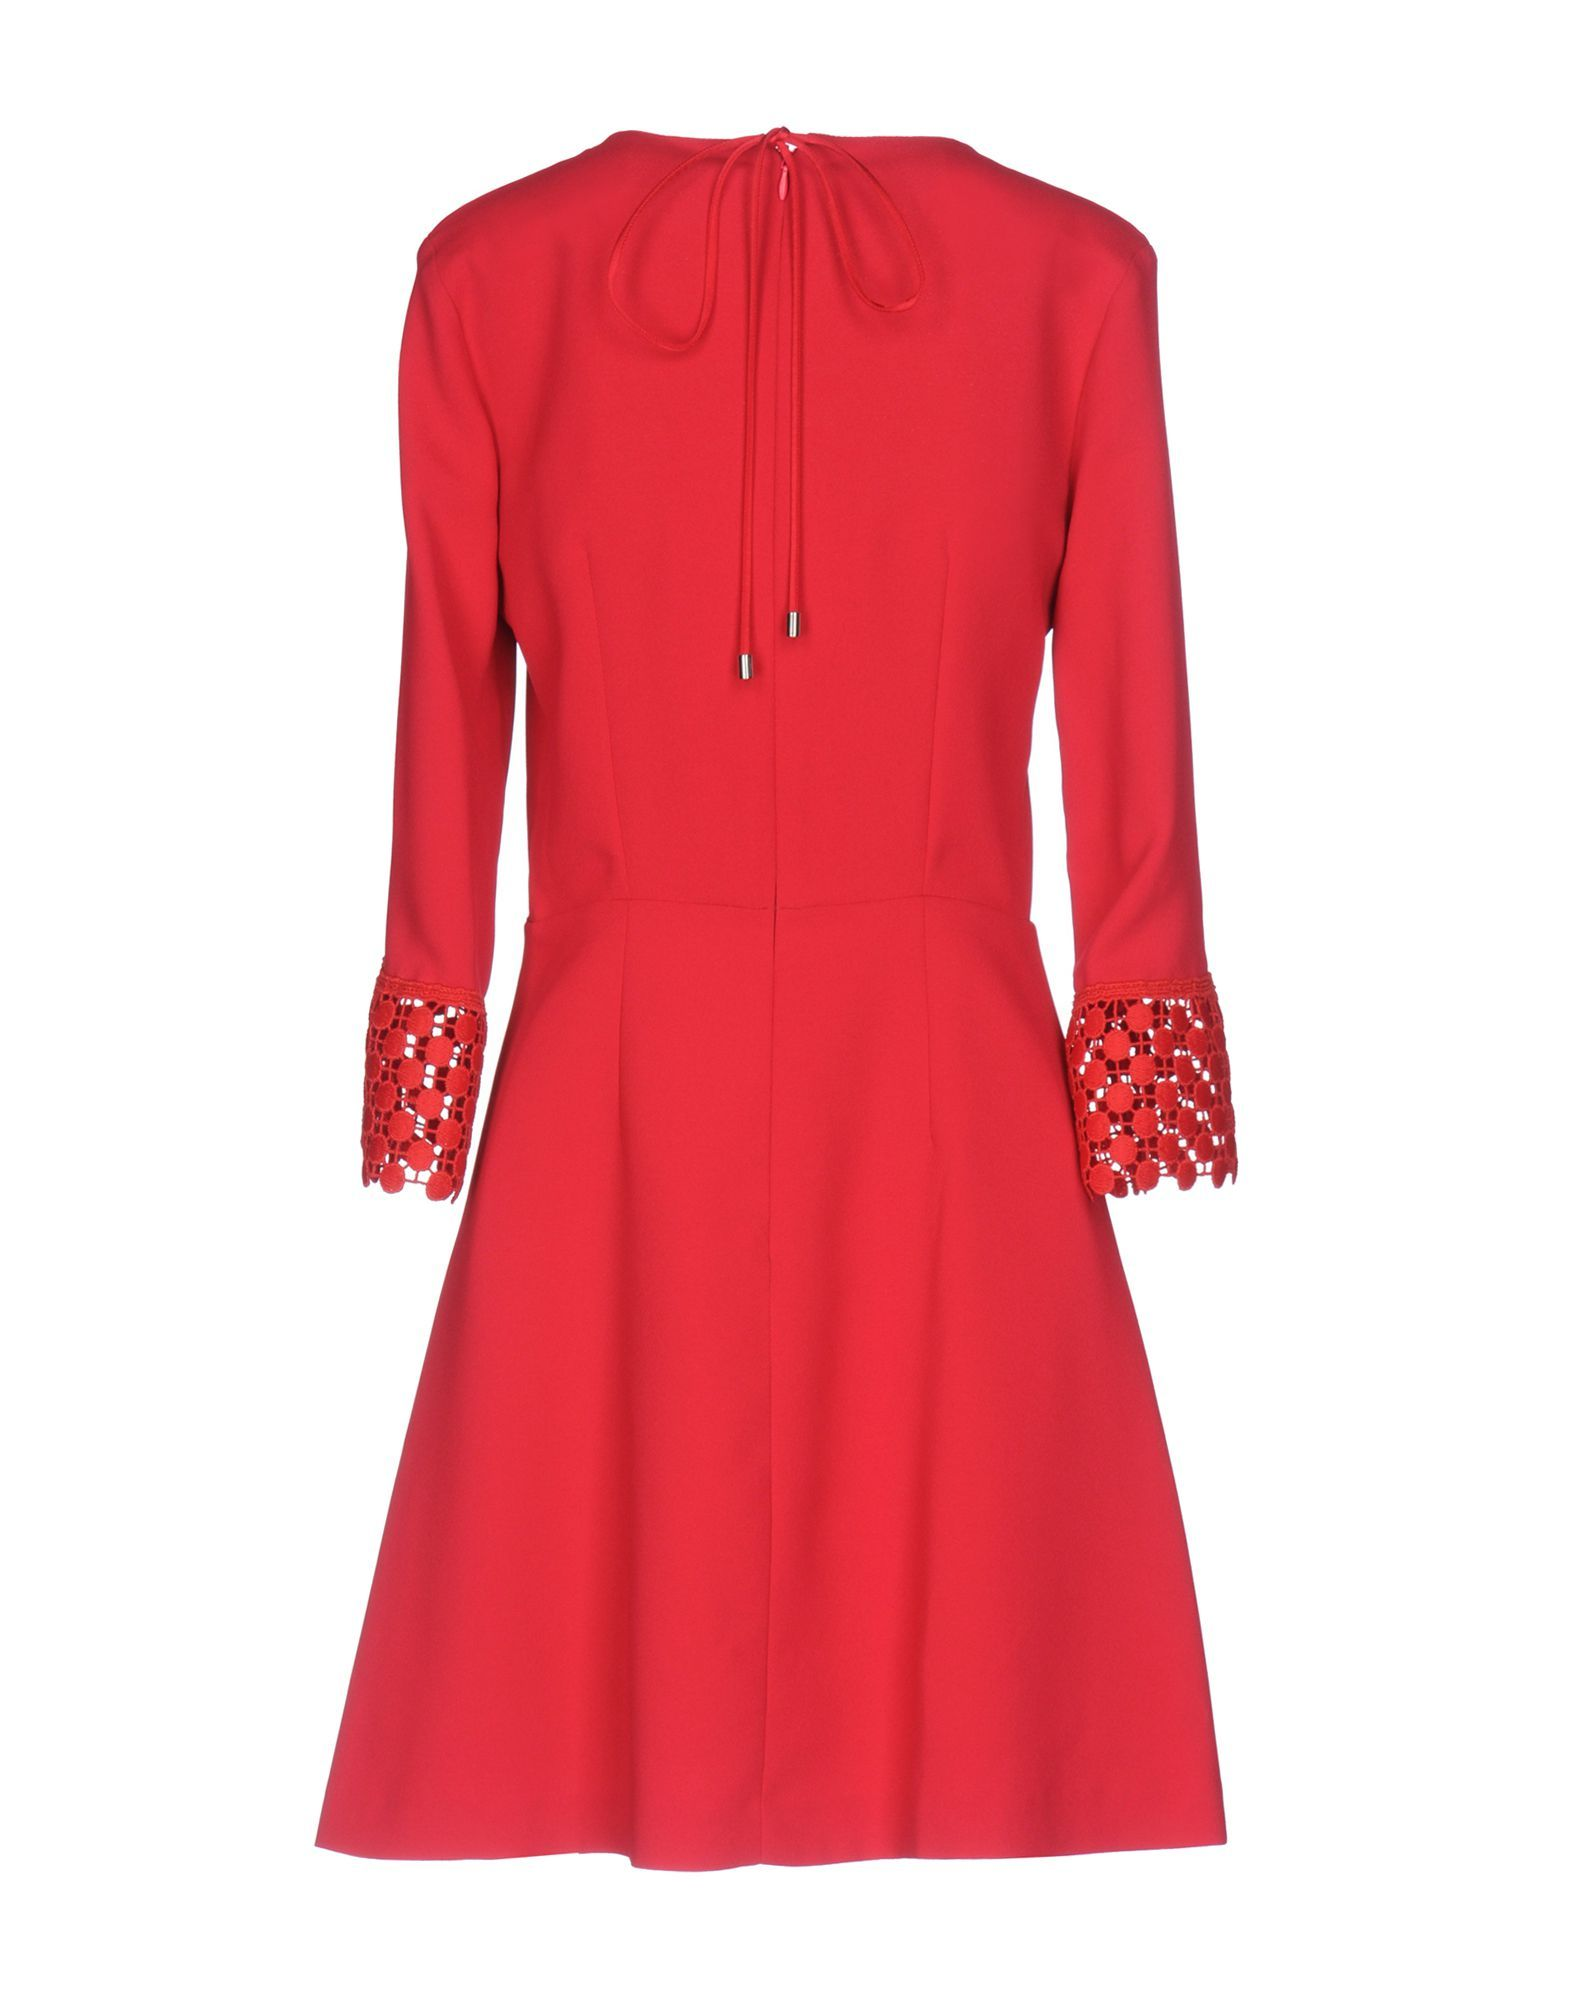 Pinko Red Long Sleeve Dress